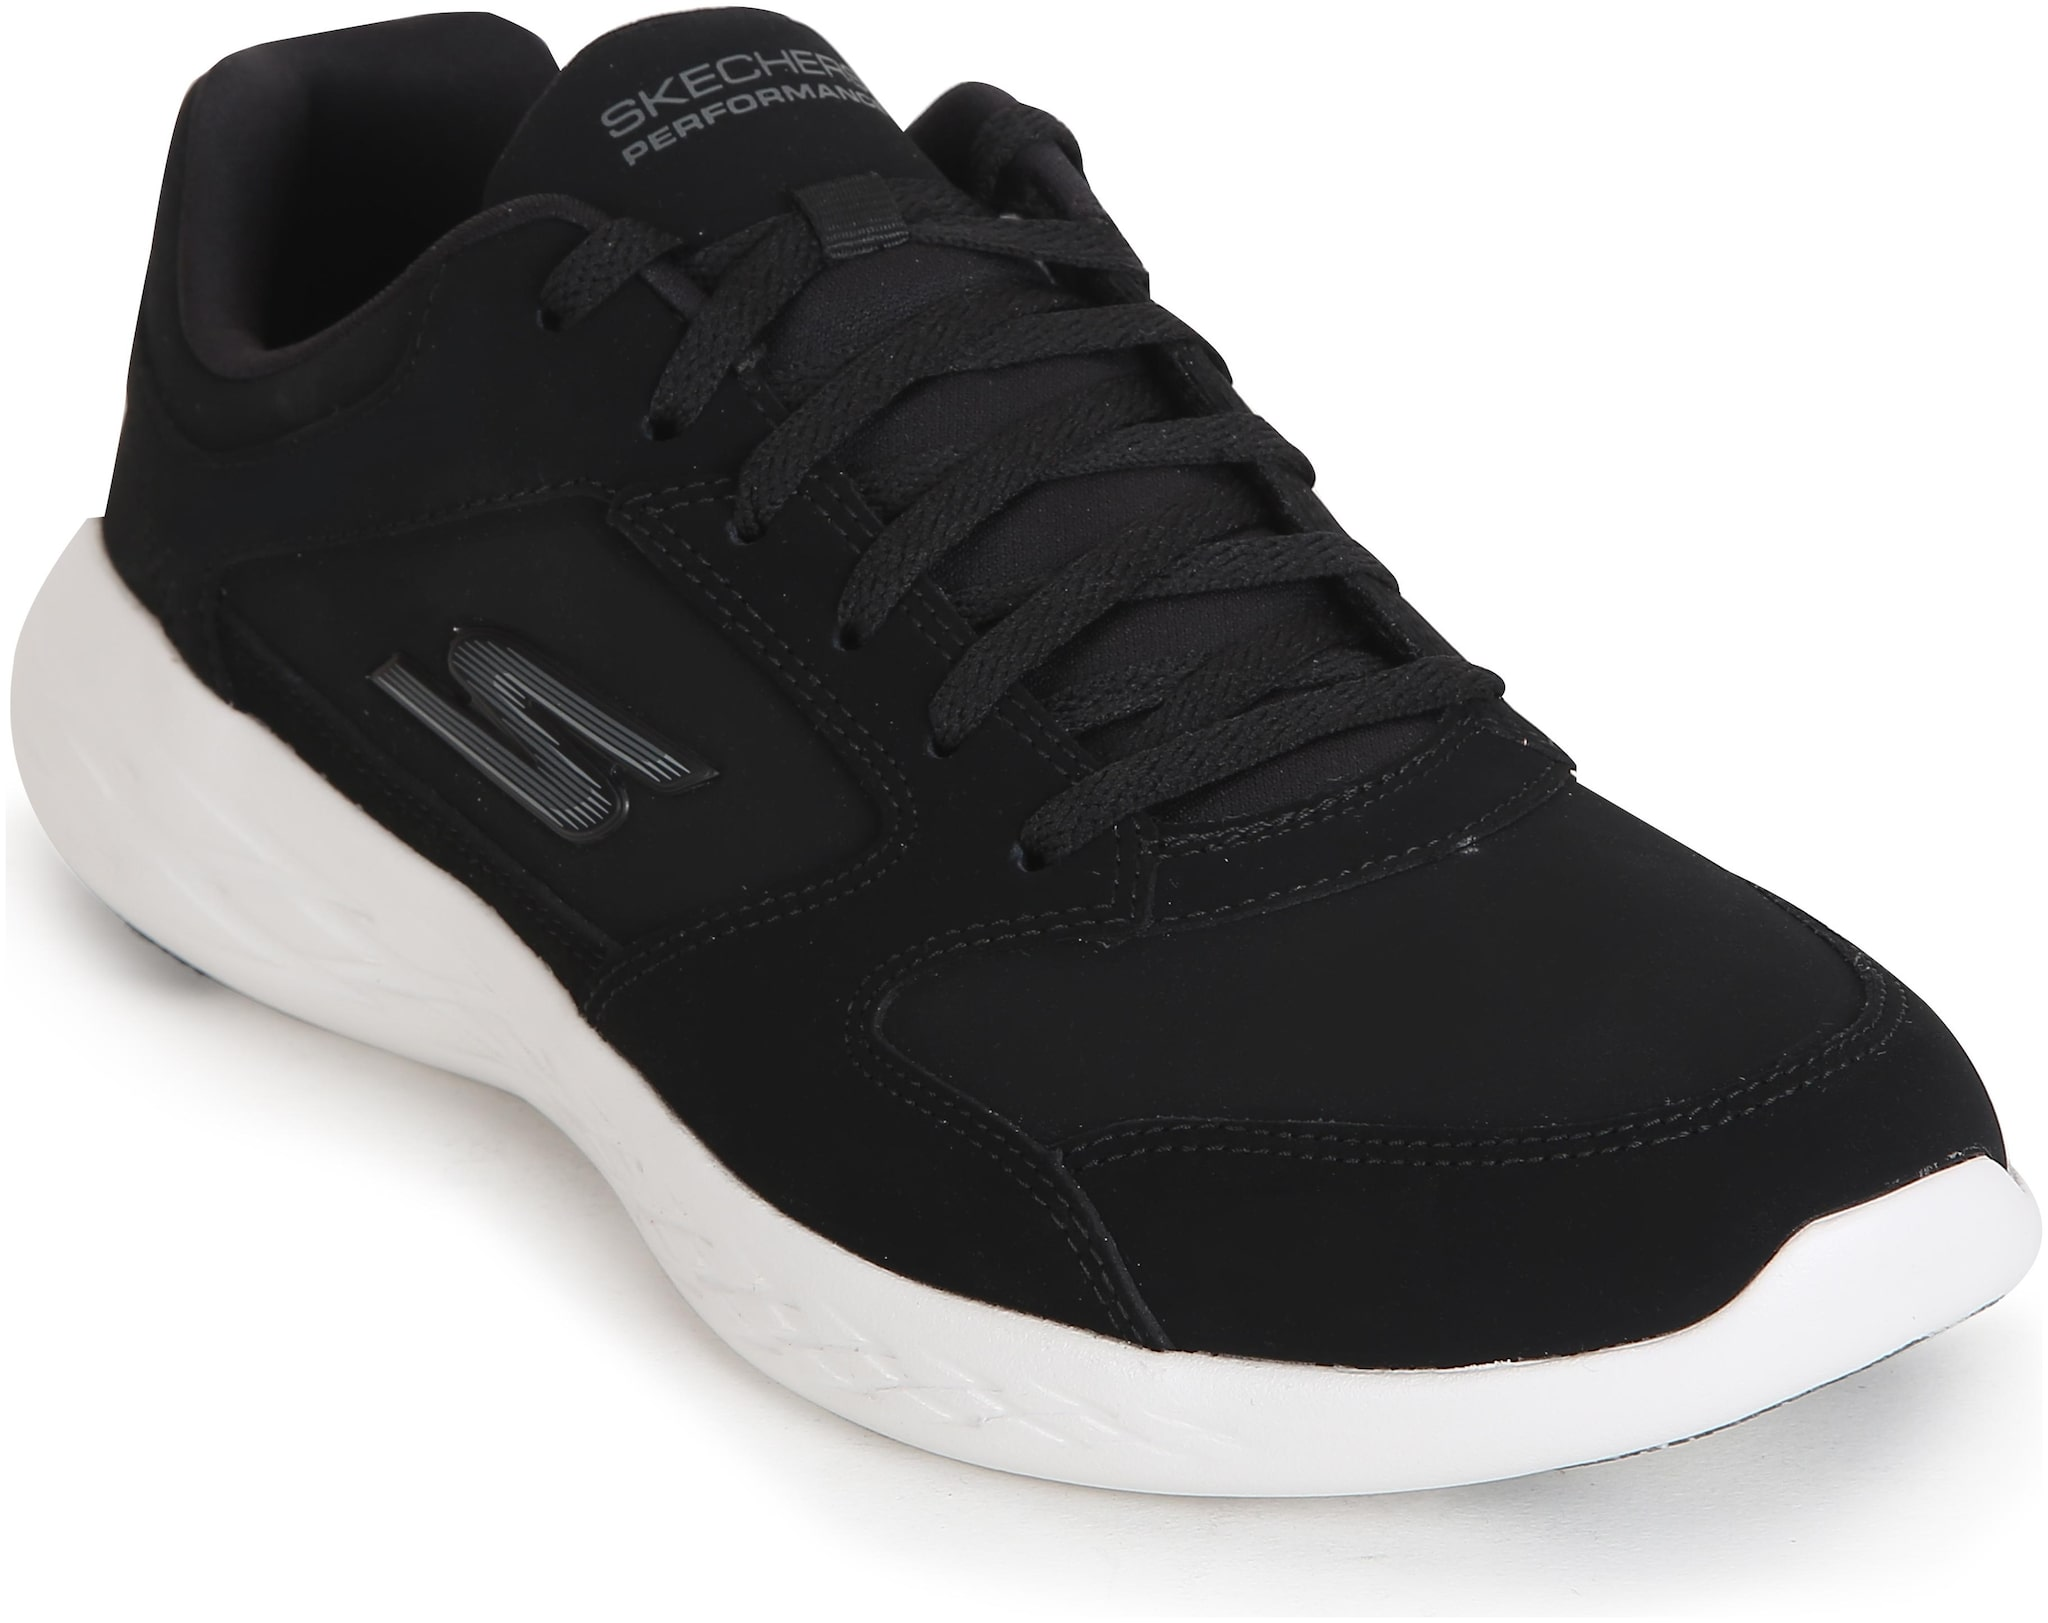 Skechers Sports Shoes Buy Skechers Sports Shoes Online for